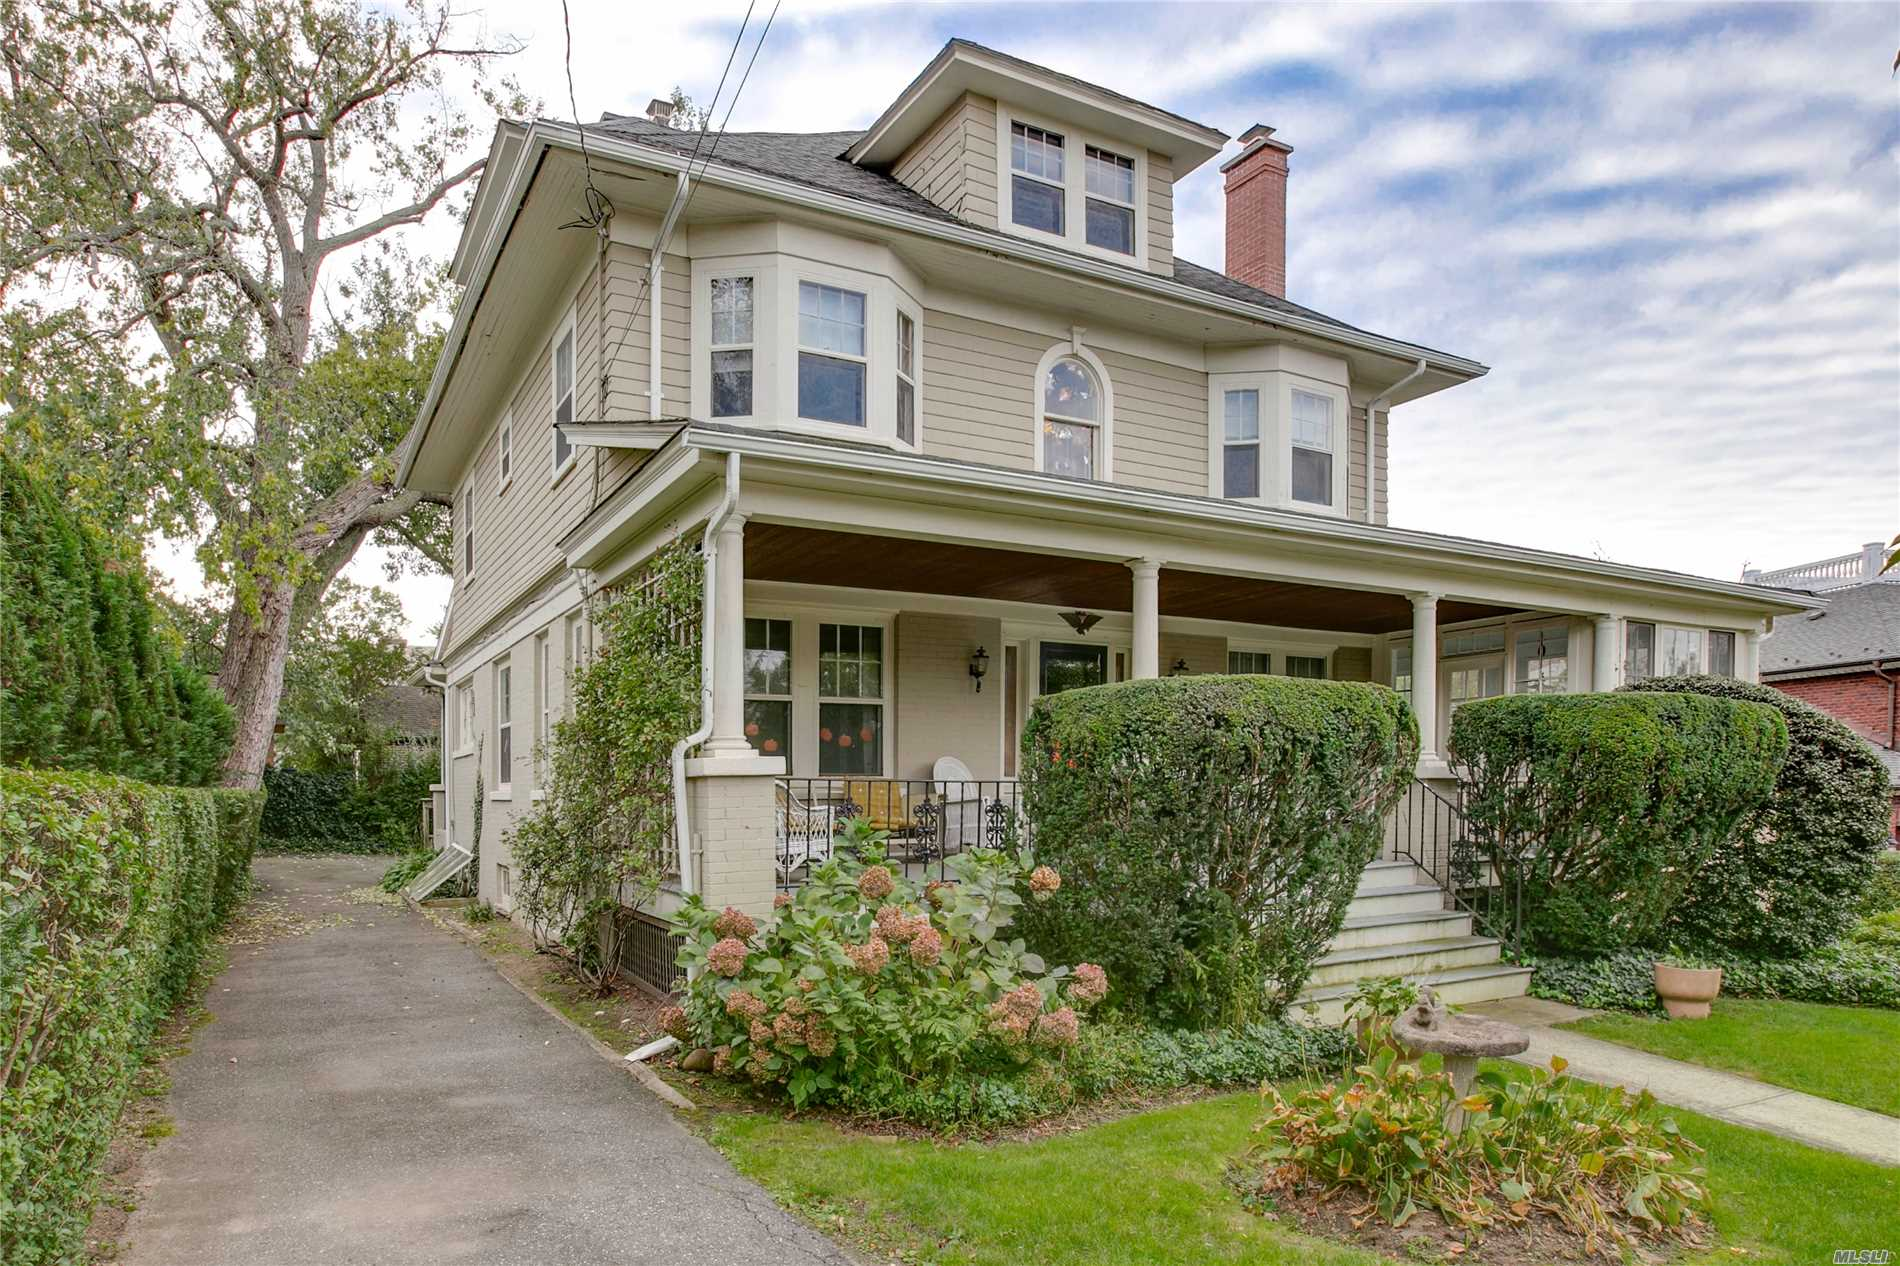 Photo of home for sale at 4 Kenmore Rd, Douglaston NY